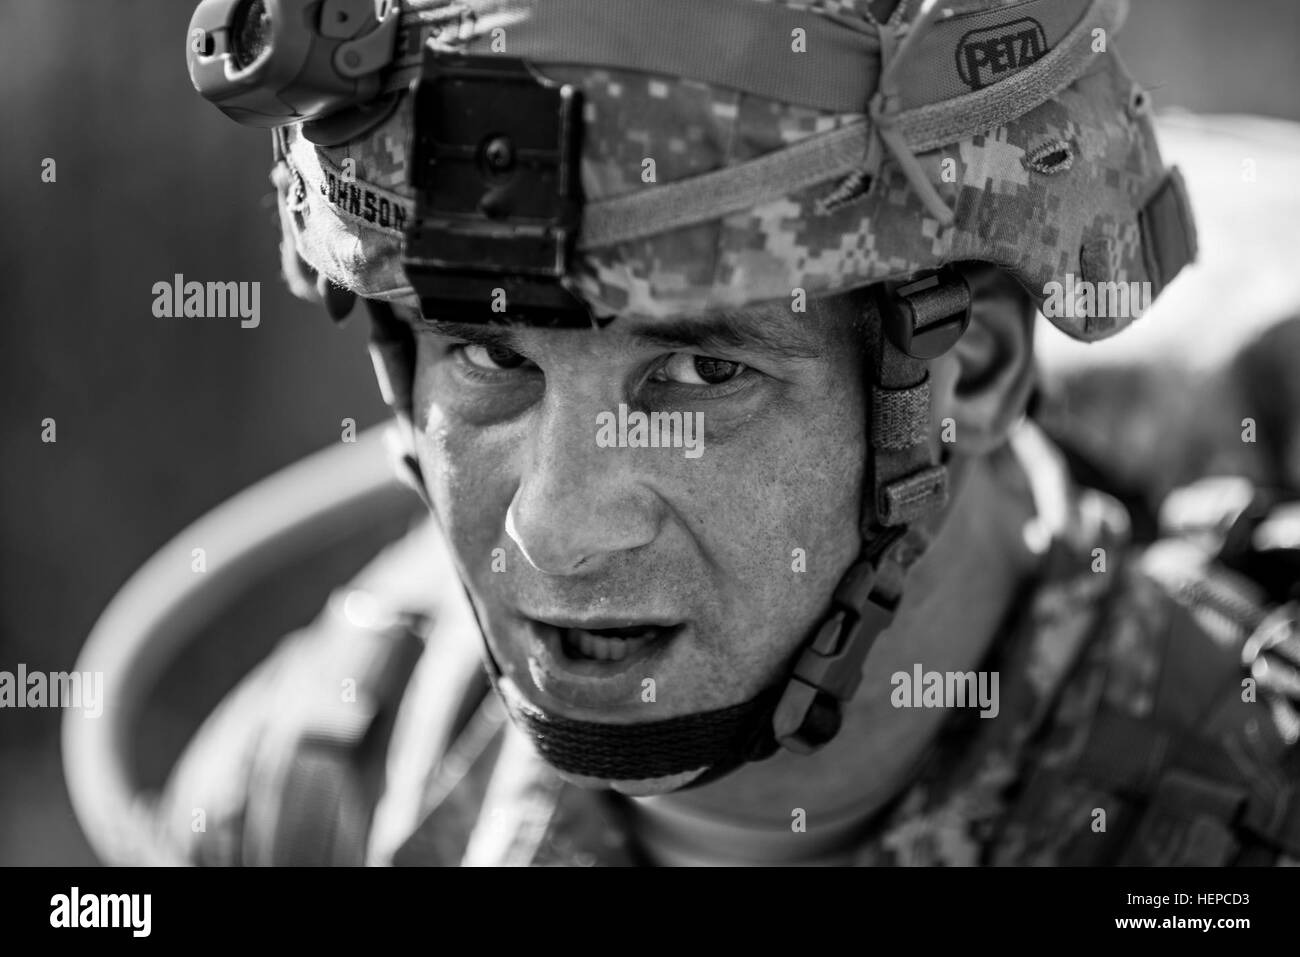 Sgt. 1st Class Keith Johnson, from Manchaster, N.H., with the 1st Battalion, Army Reserve Careers Division, stands - Stock Image